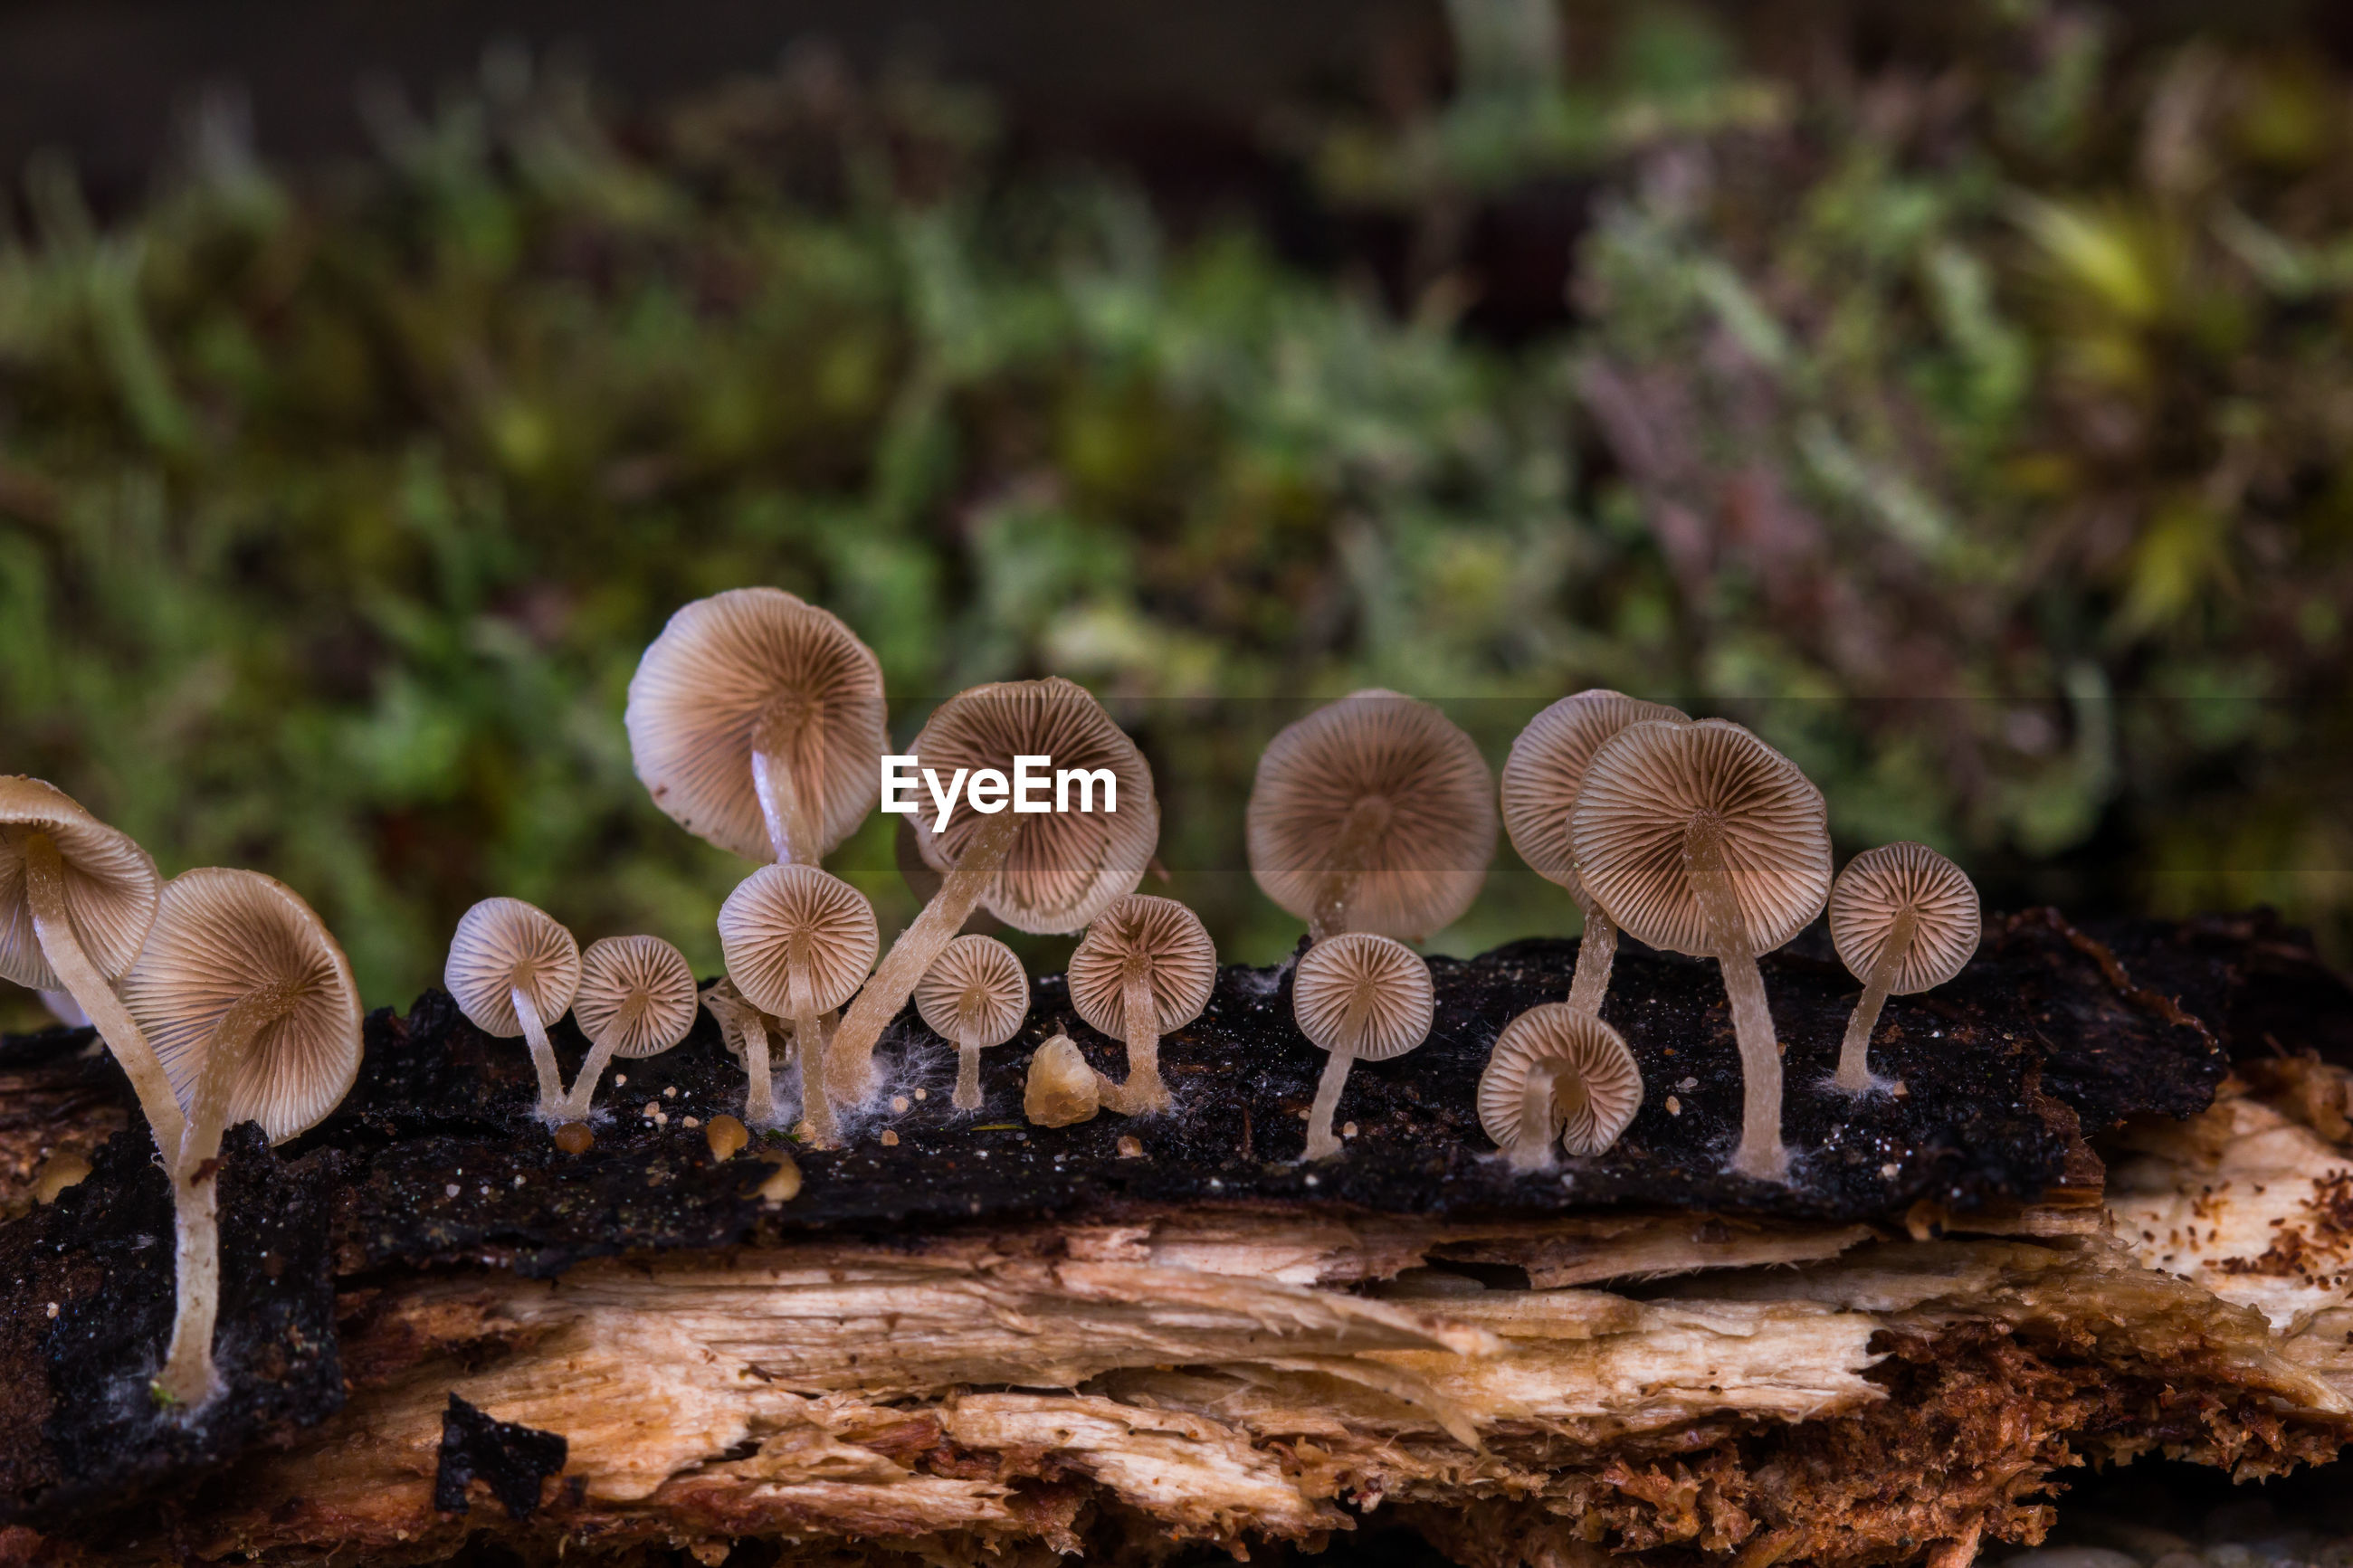 Close-up of mushrooms growing on tree trunk